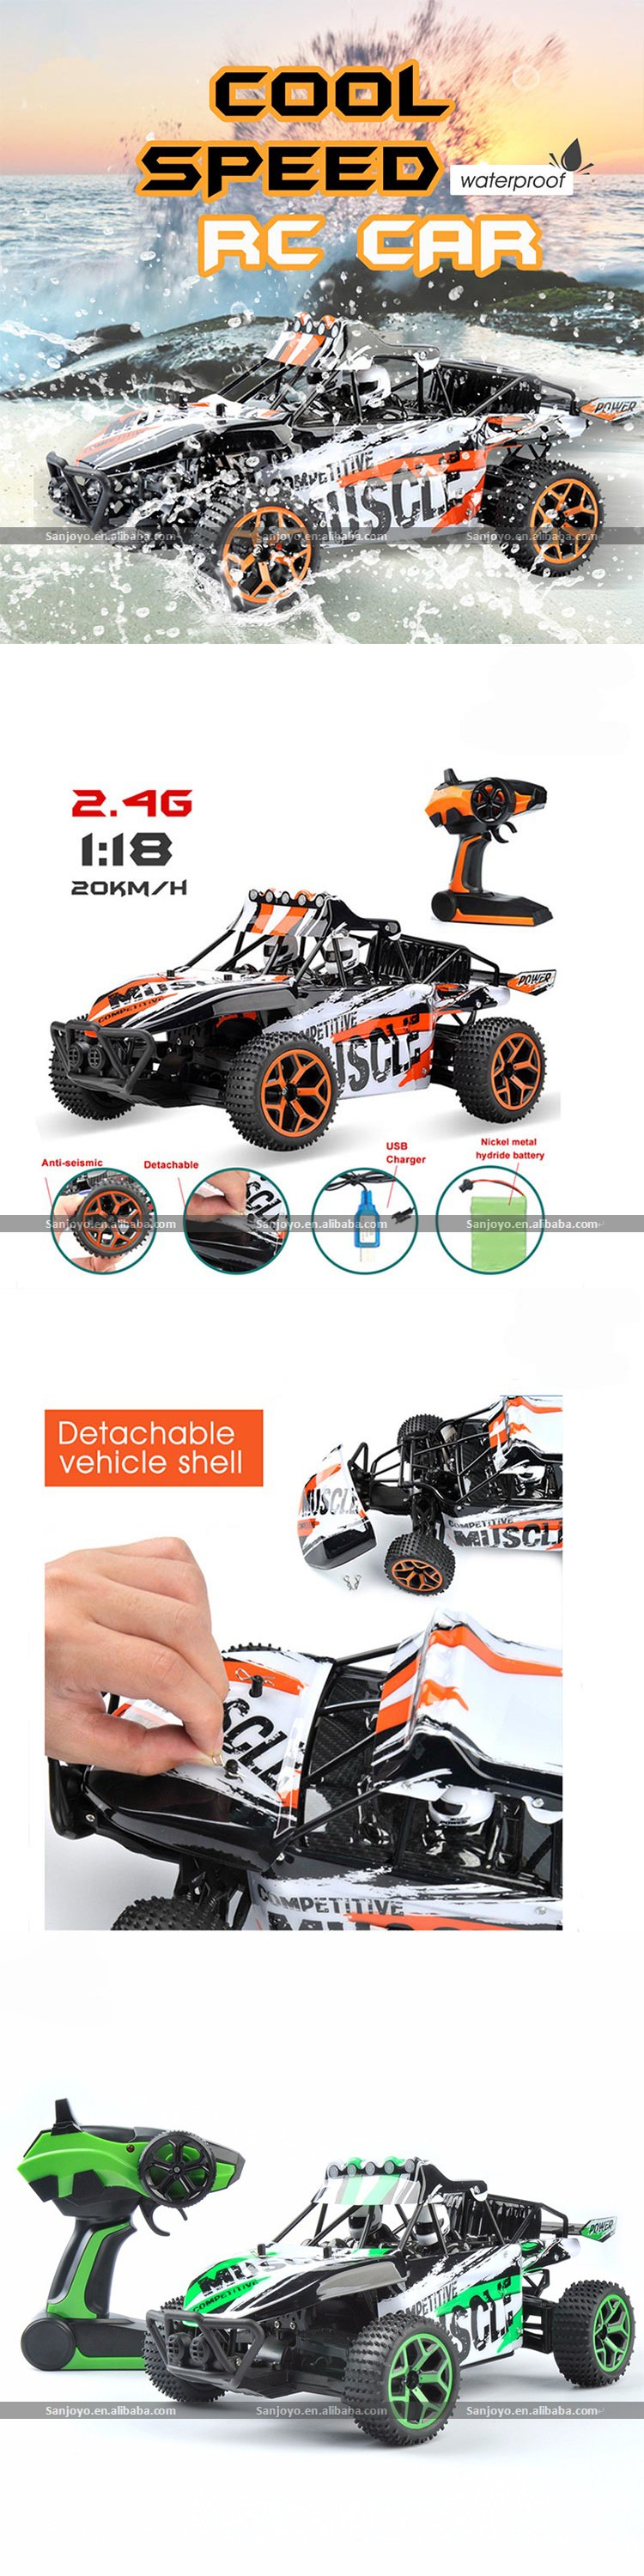 Newest Boys Original RC Car 1:18 2.4G Radio Remote Control Car Model Climbing Competitive 4WD RC Cars Racing Toys Vehicles